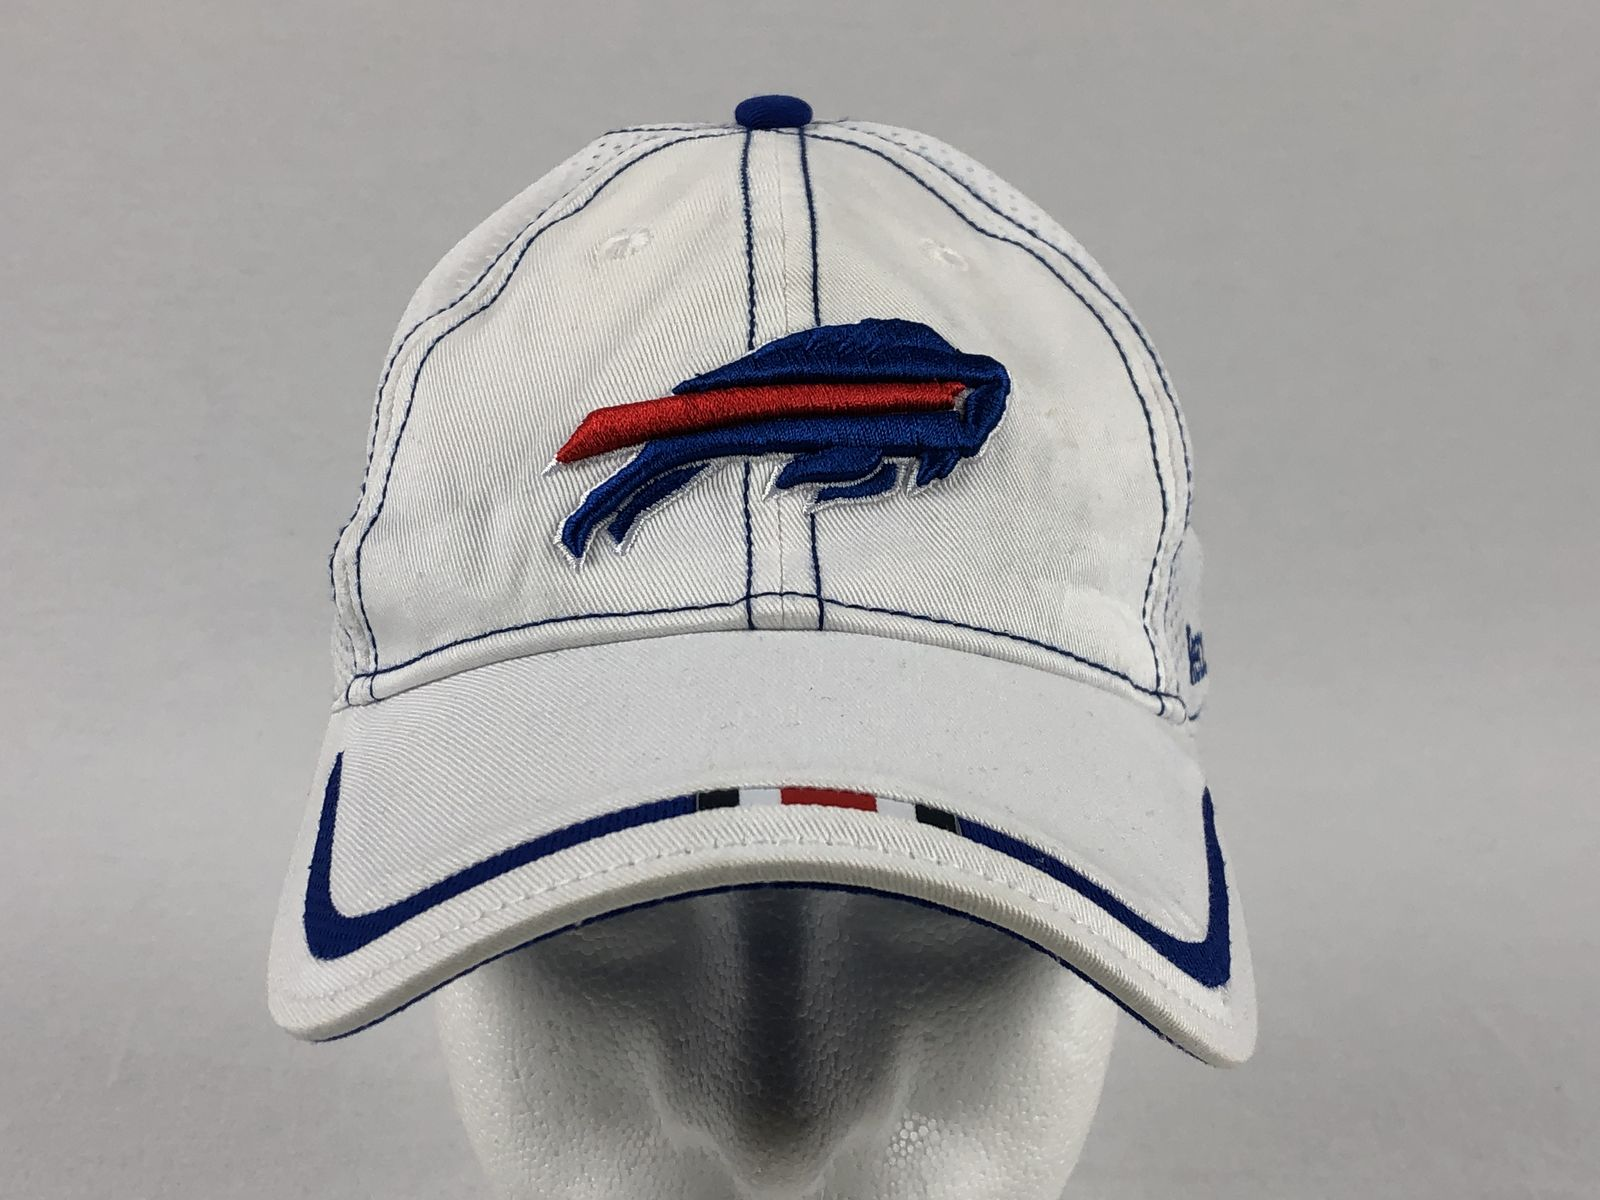 35de287b636 Details about Reebok Buffalo Bills - White Blue Adjustable Hat (OSFM) - Used